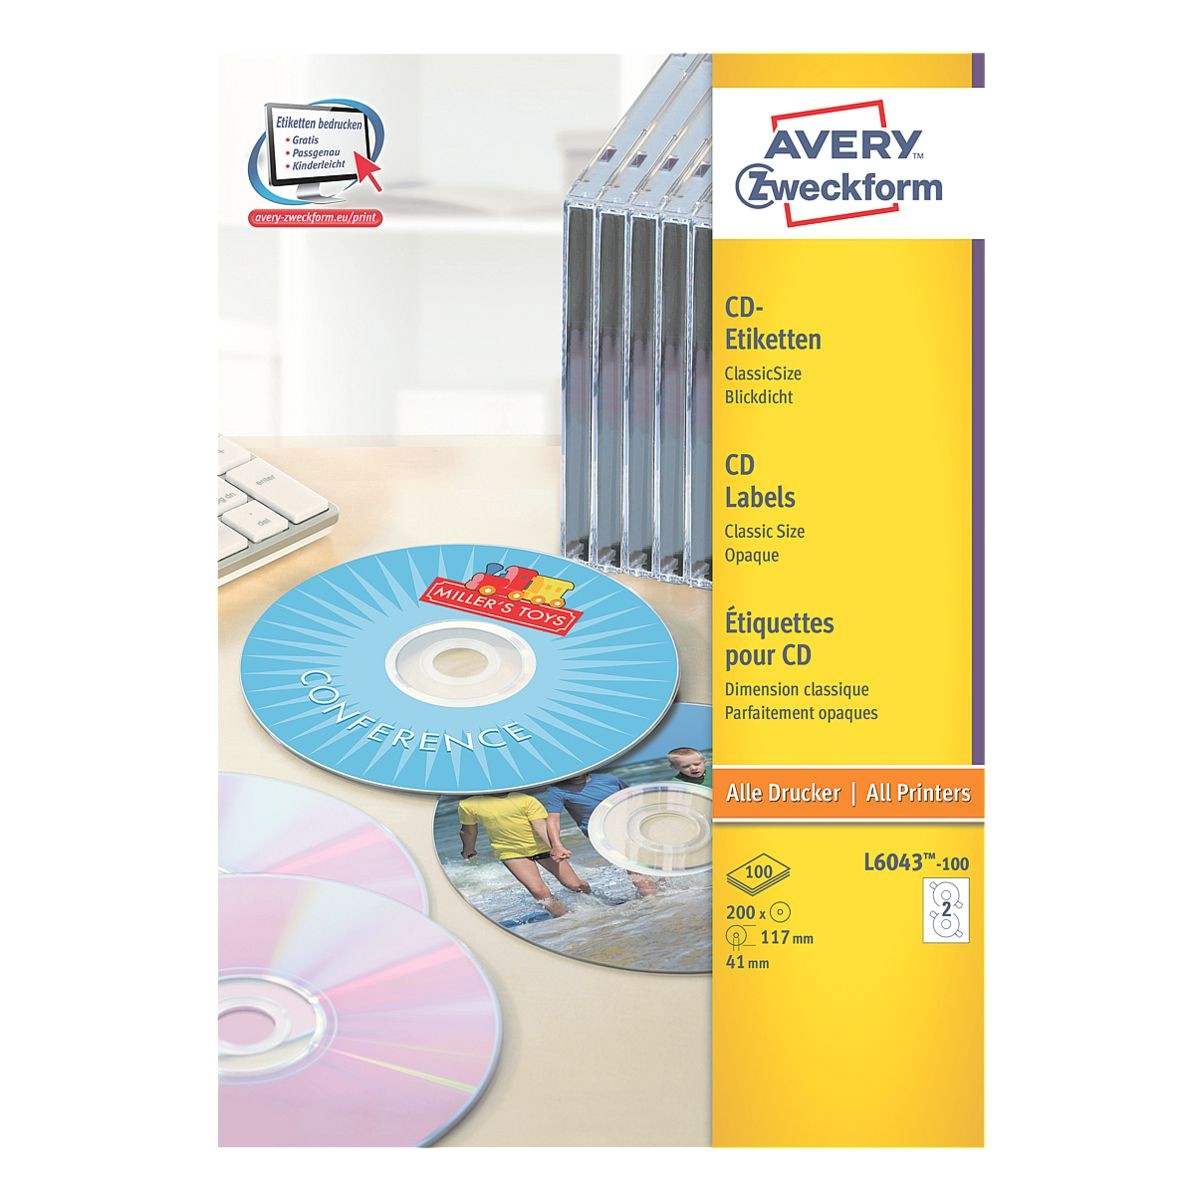 Avery Cd Label Template L6043 Avery Zweckform 100er Pack Cd Dvd Label L6043 100 Bei